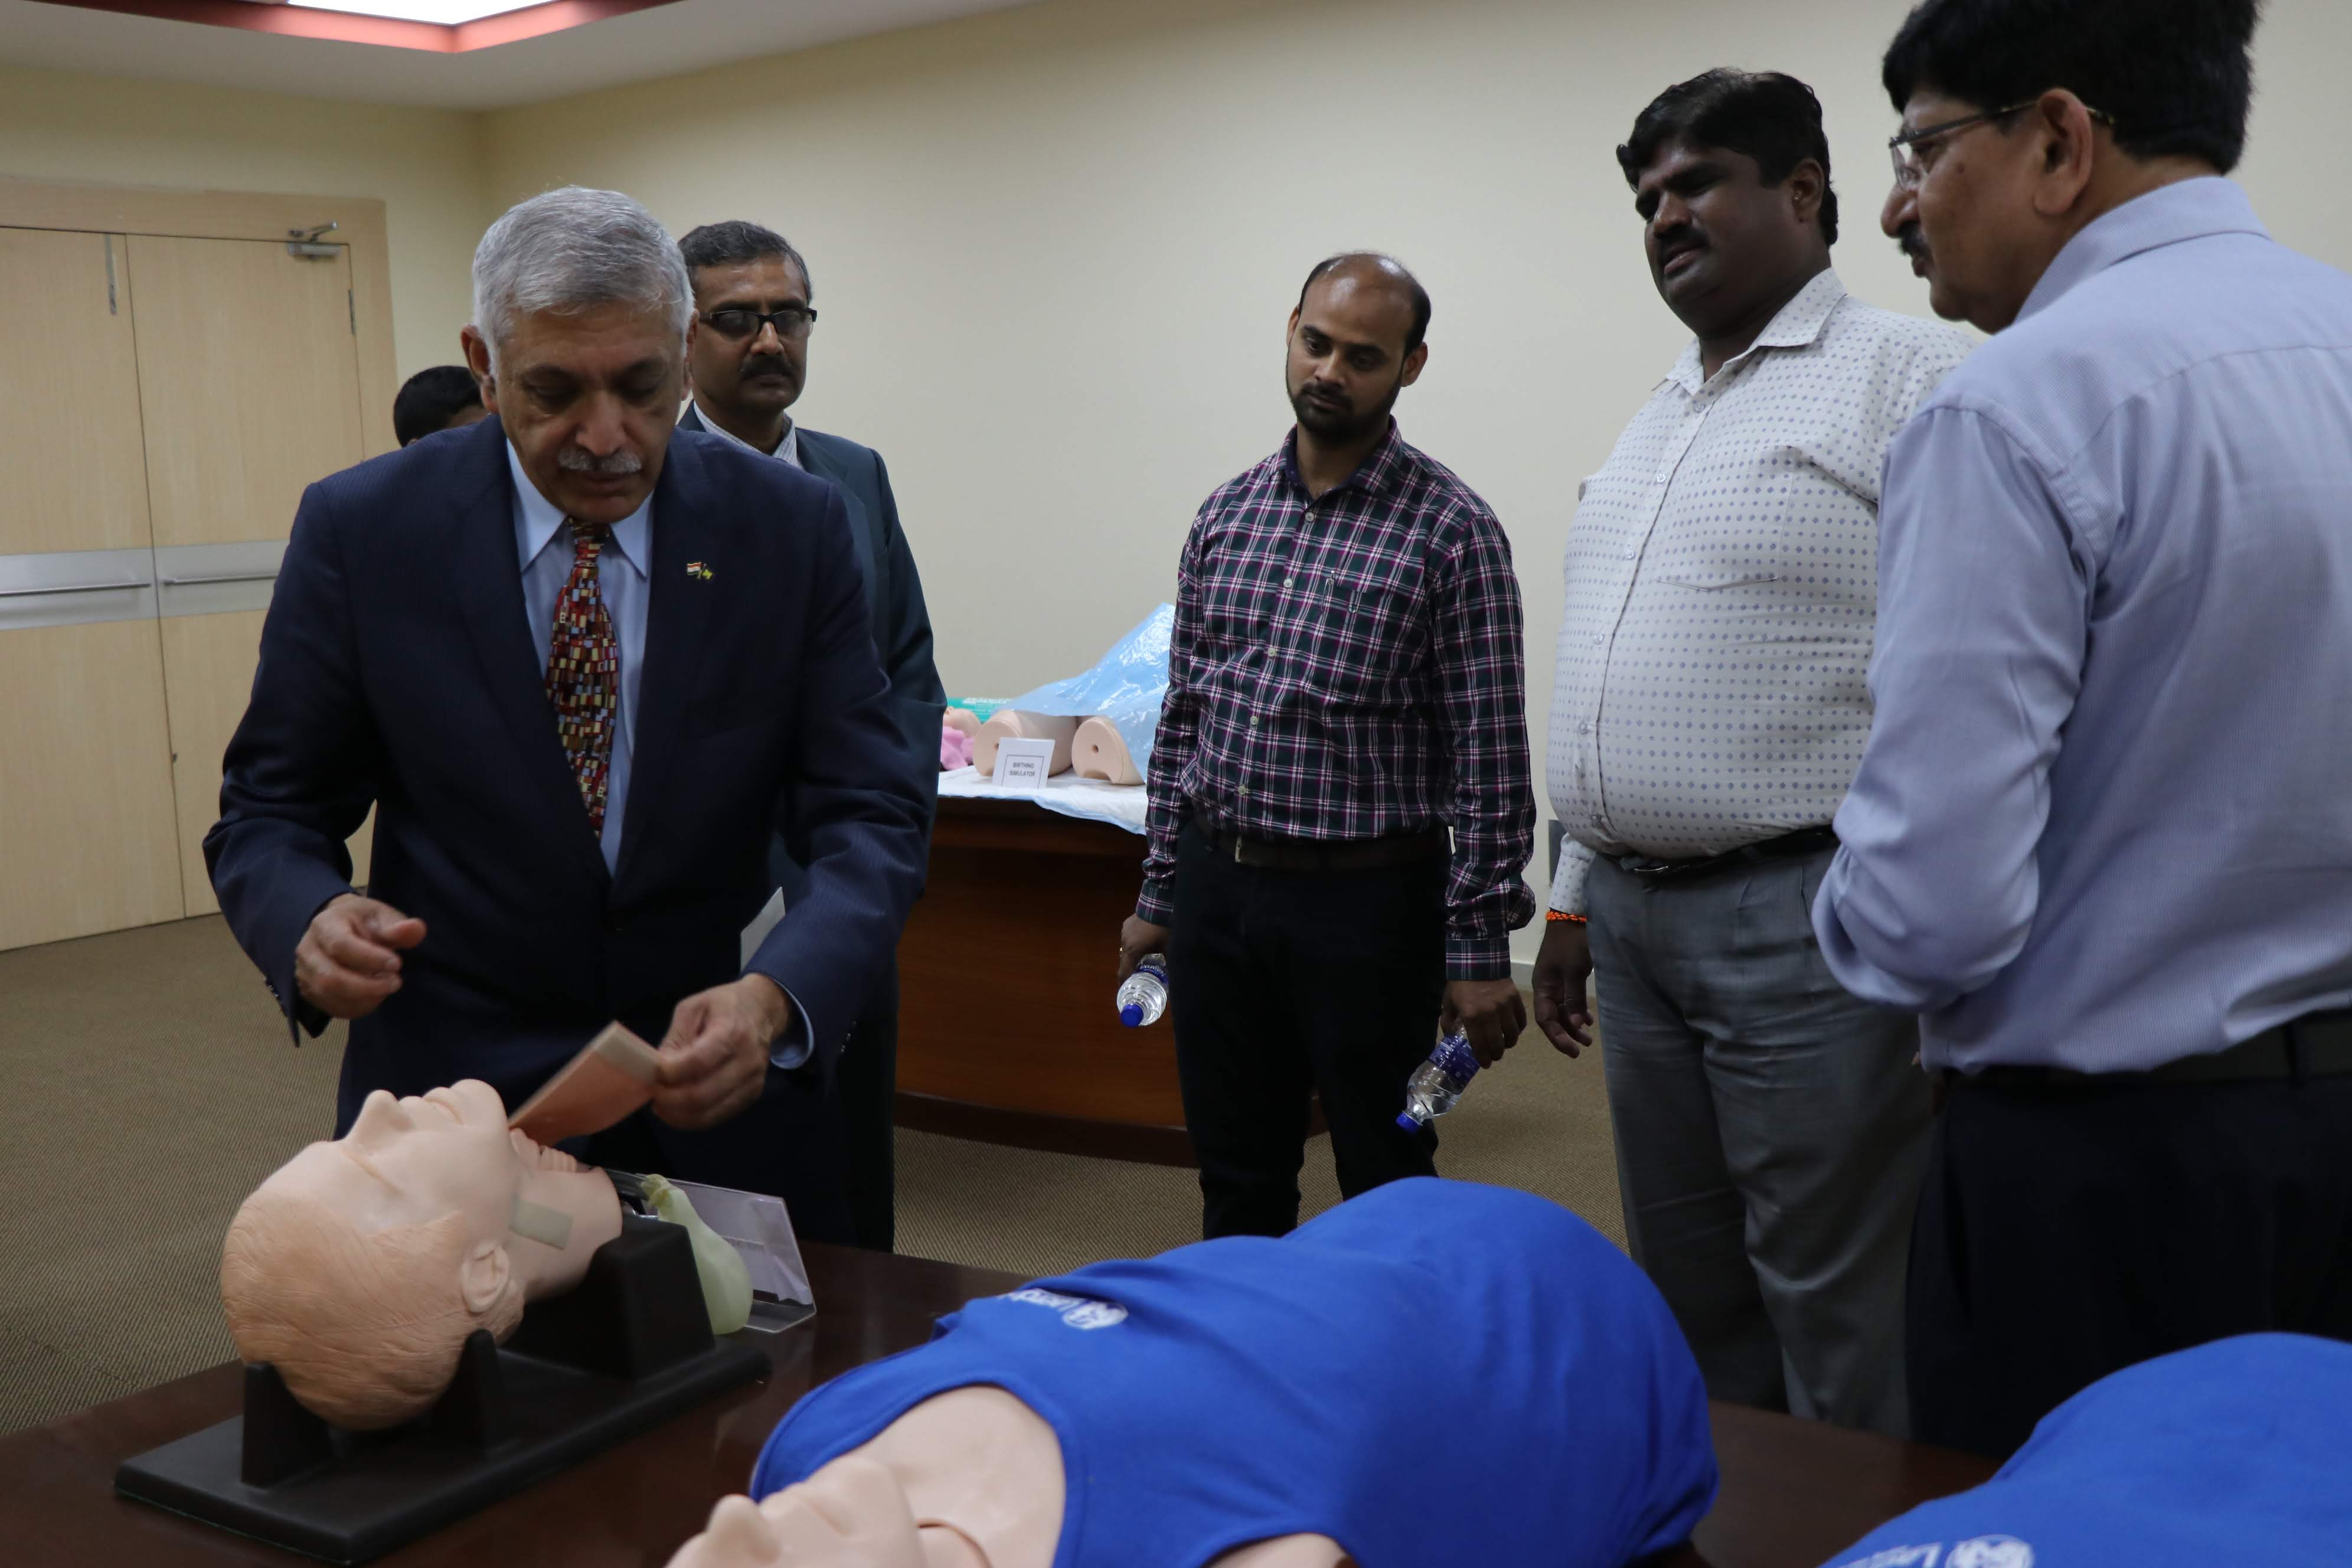 U-M Medical School researcher Krishnan Raghvendran demonstrates a procedure to advanced Emergency medical technicians. Image credit: Krishnan Raghvendran